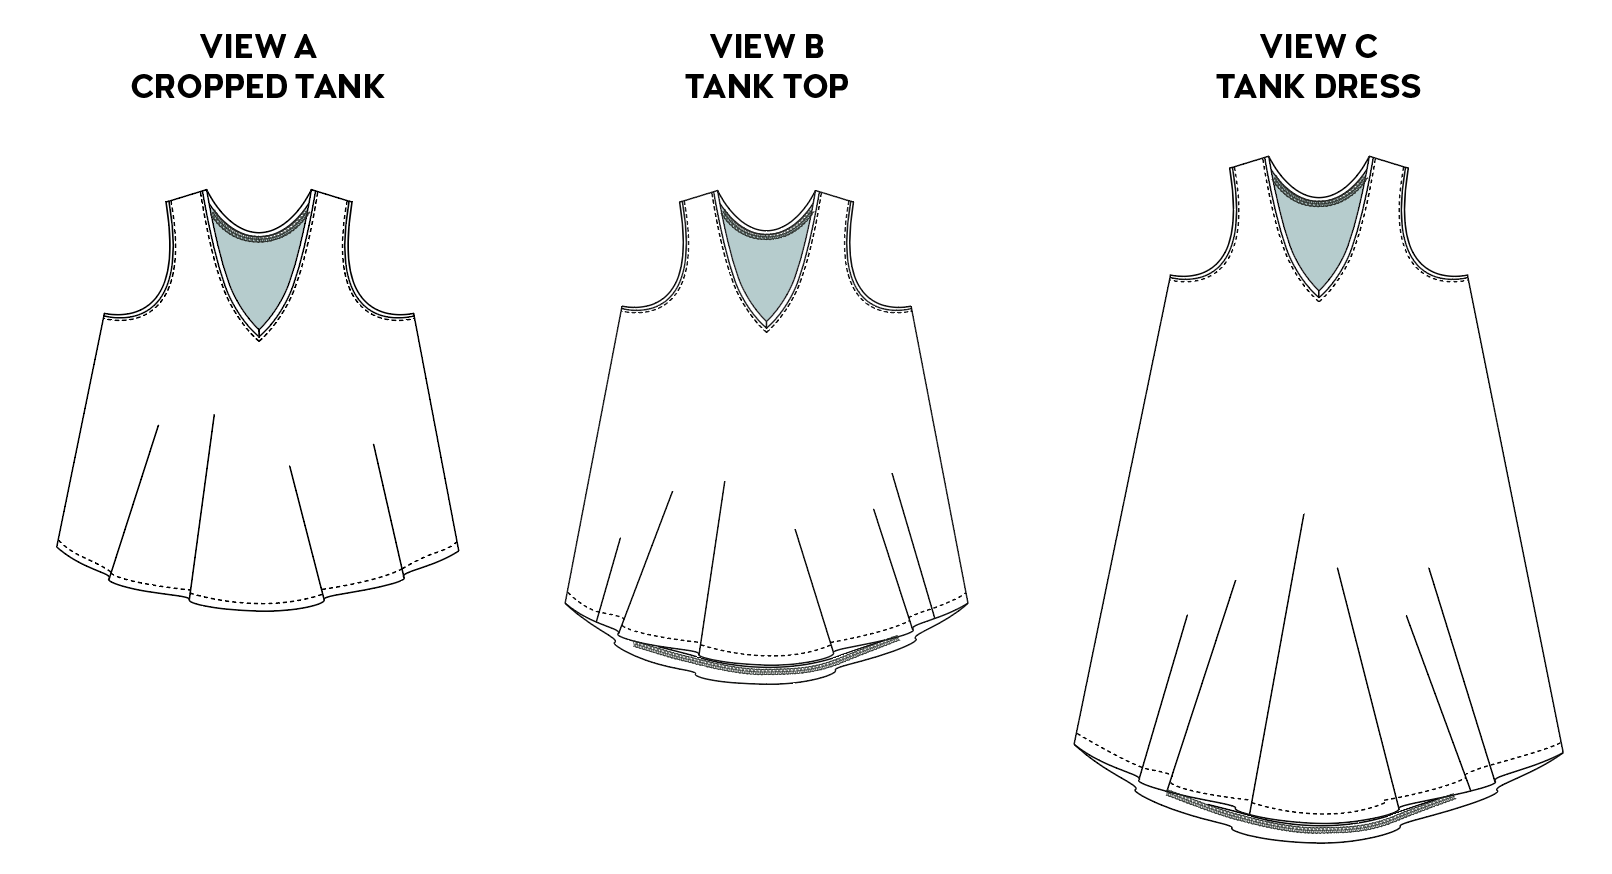 Line drawings of a V-neck tank in cropped, tank top, and tank dress views are shown in black and white.